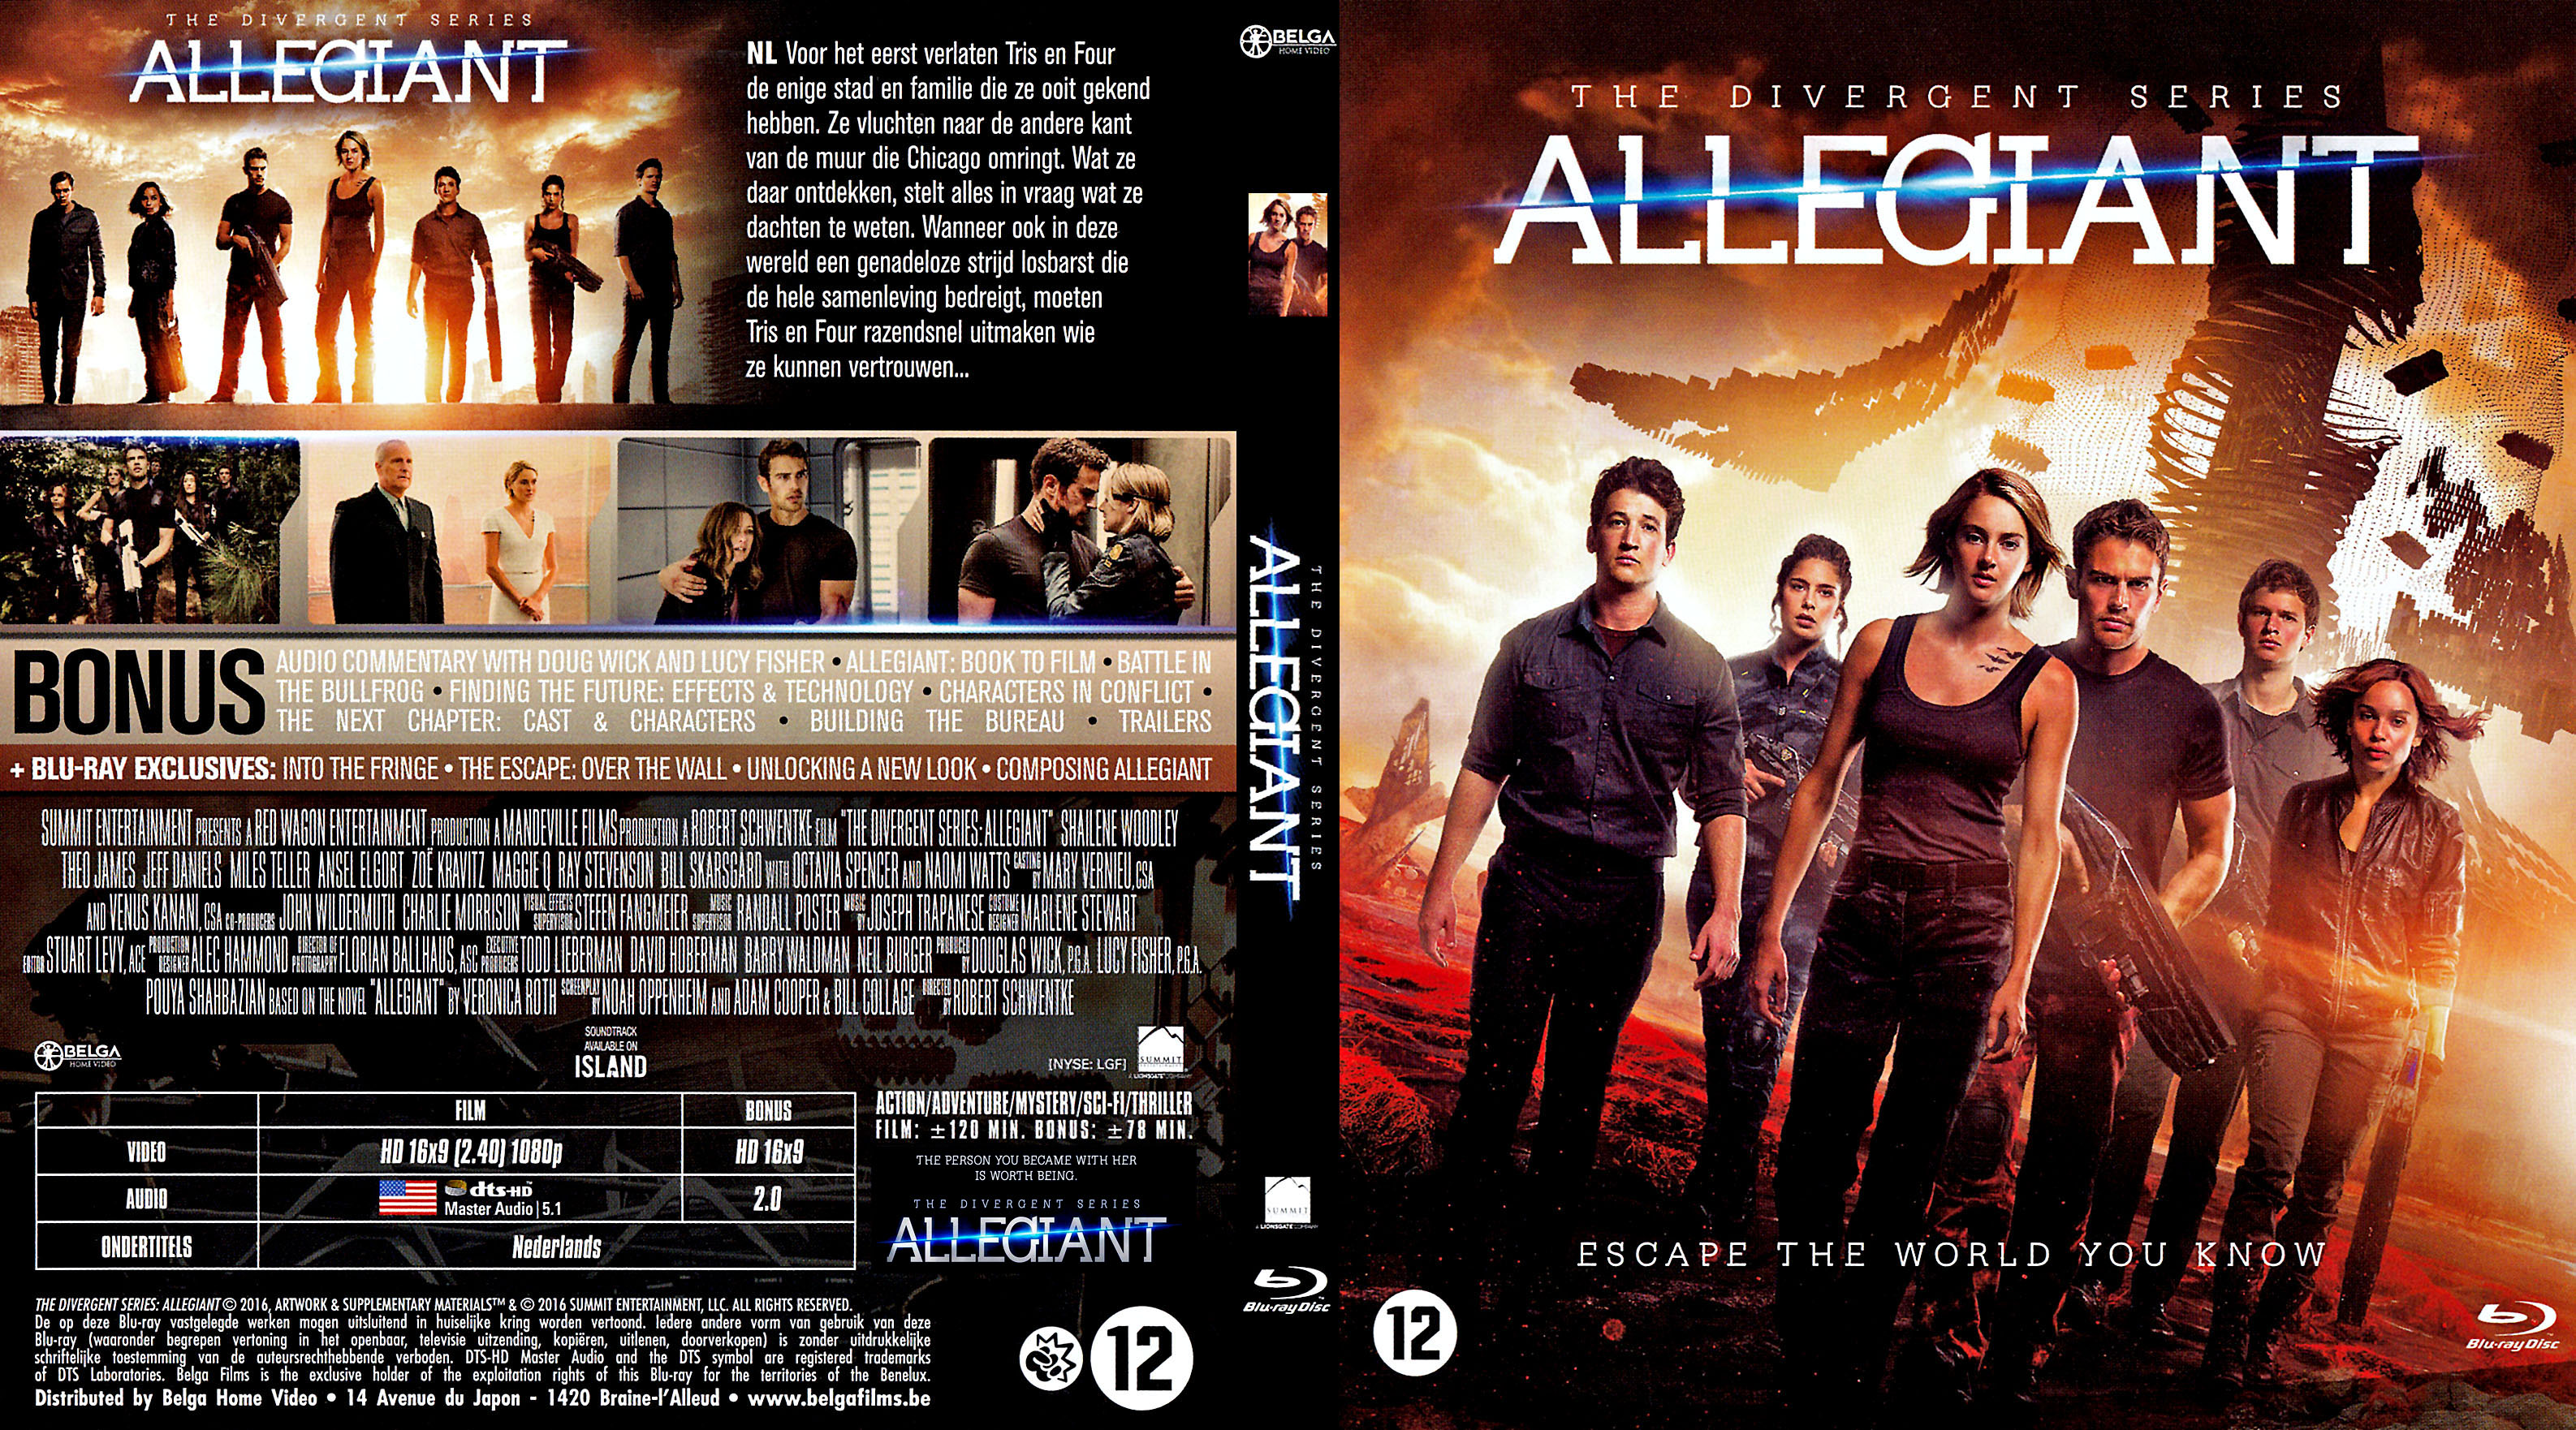 Covers Box Sk The Divergent Series Allegiant 2016 Dutch R2 High Quality Dvd Blueray Movie